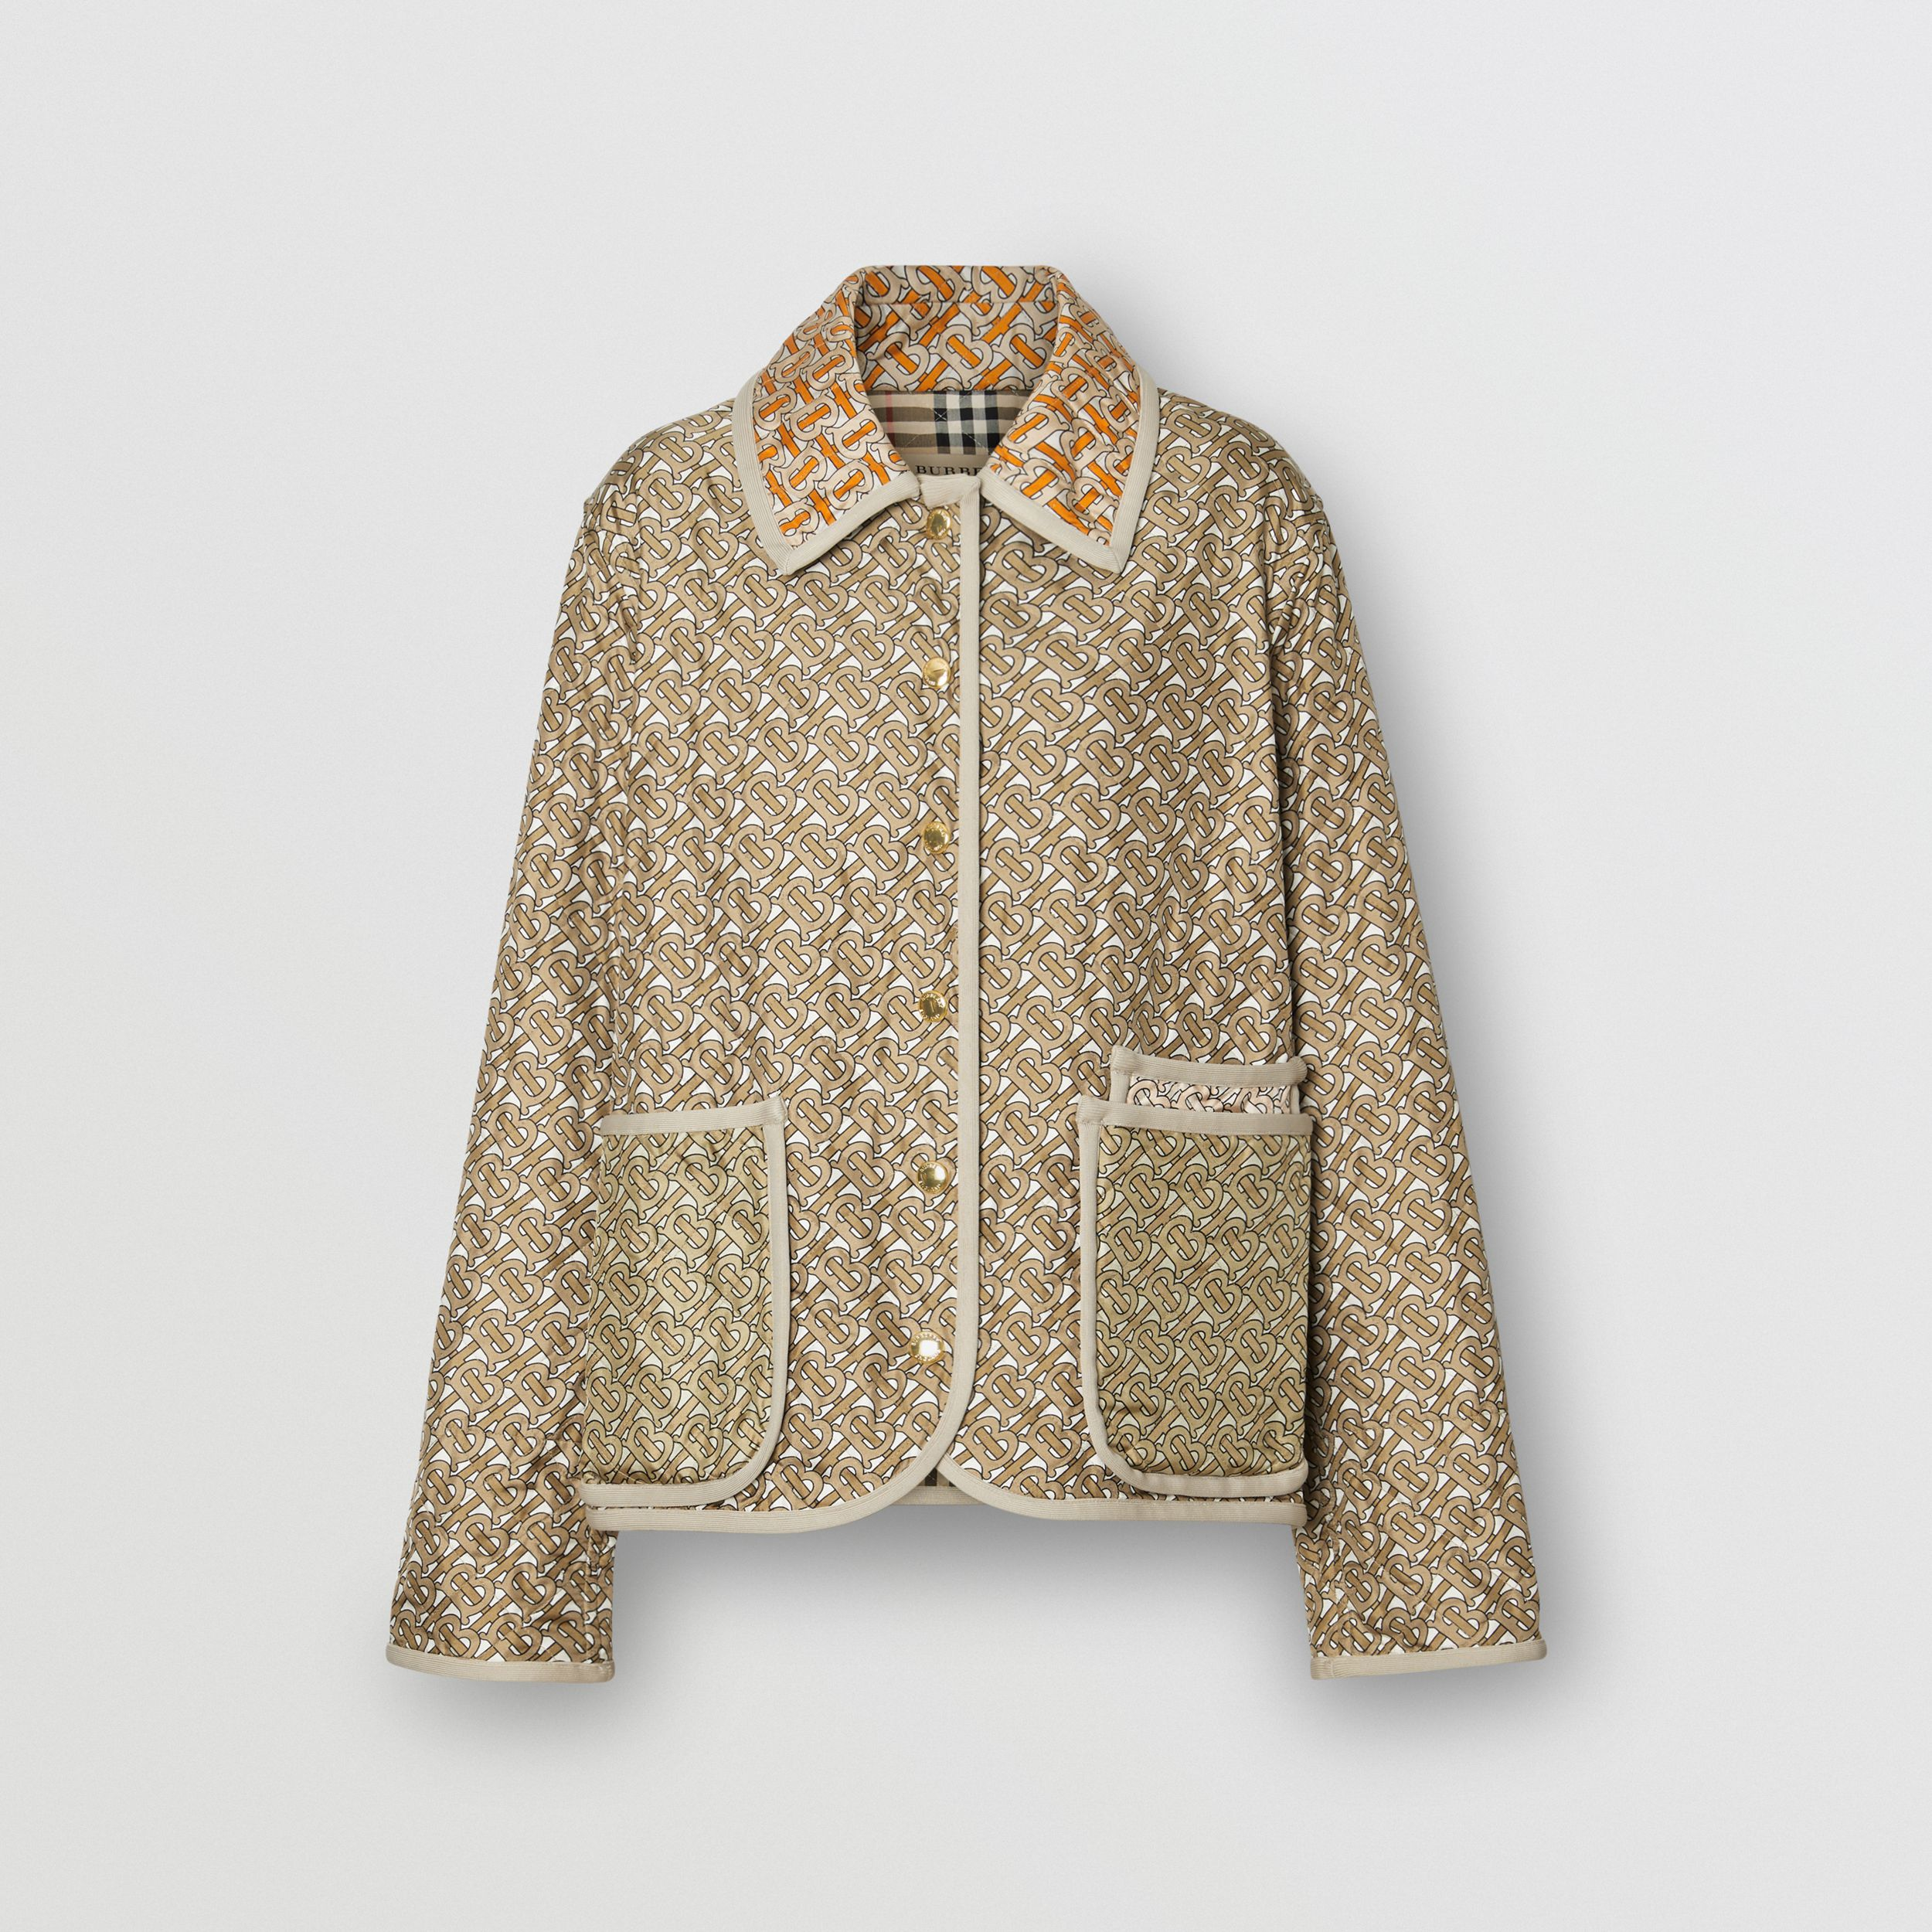 Monogram Print Quilted Silk Jacket in Archive Beige | Burberry - 4